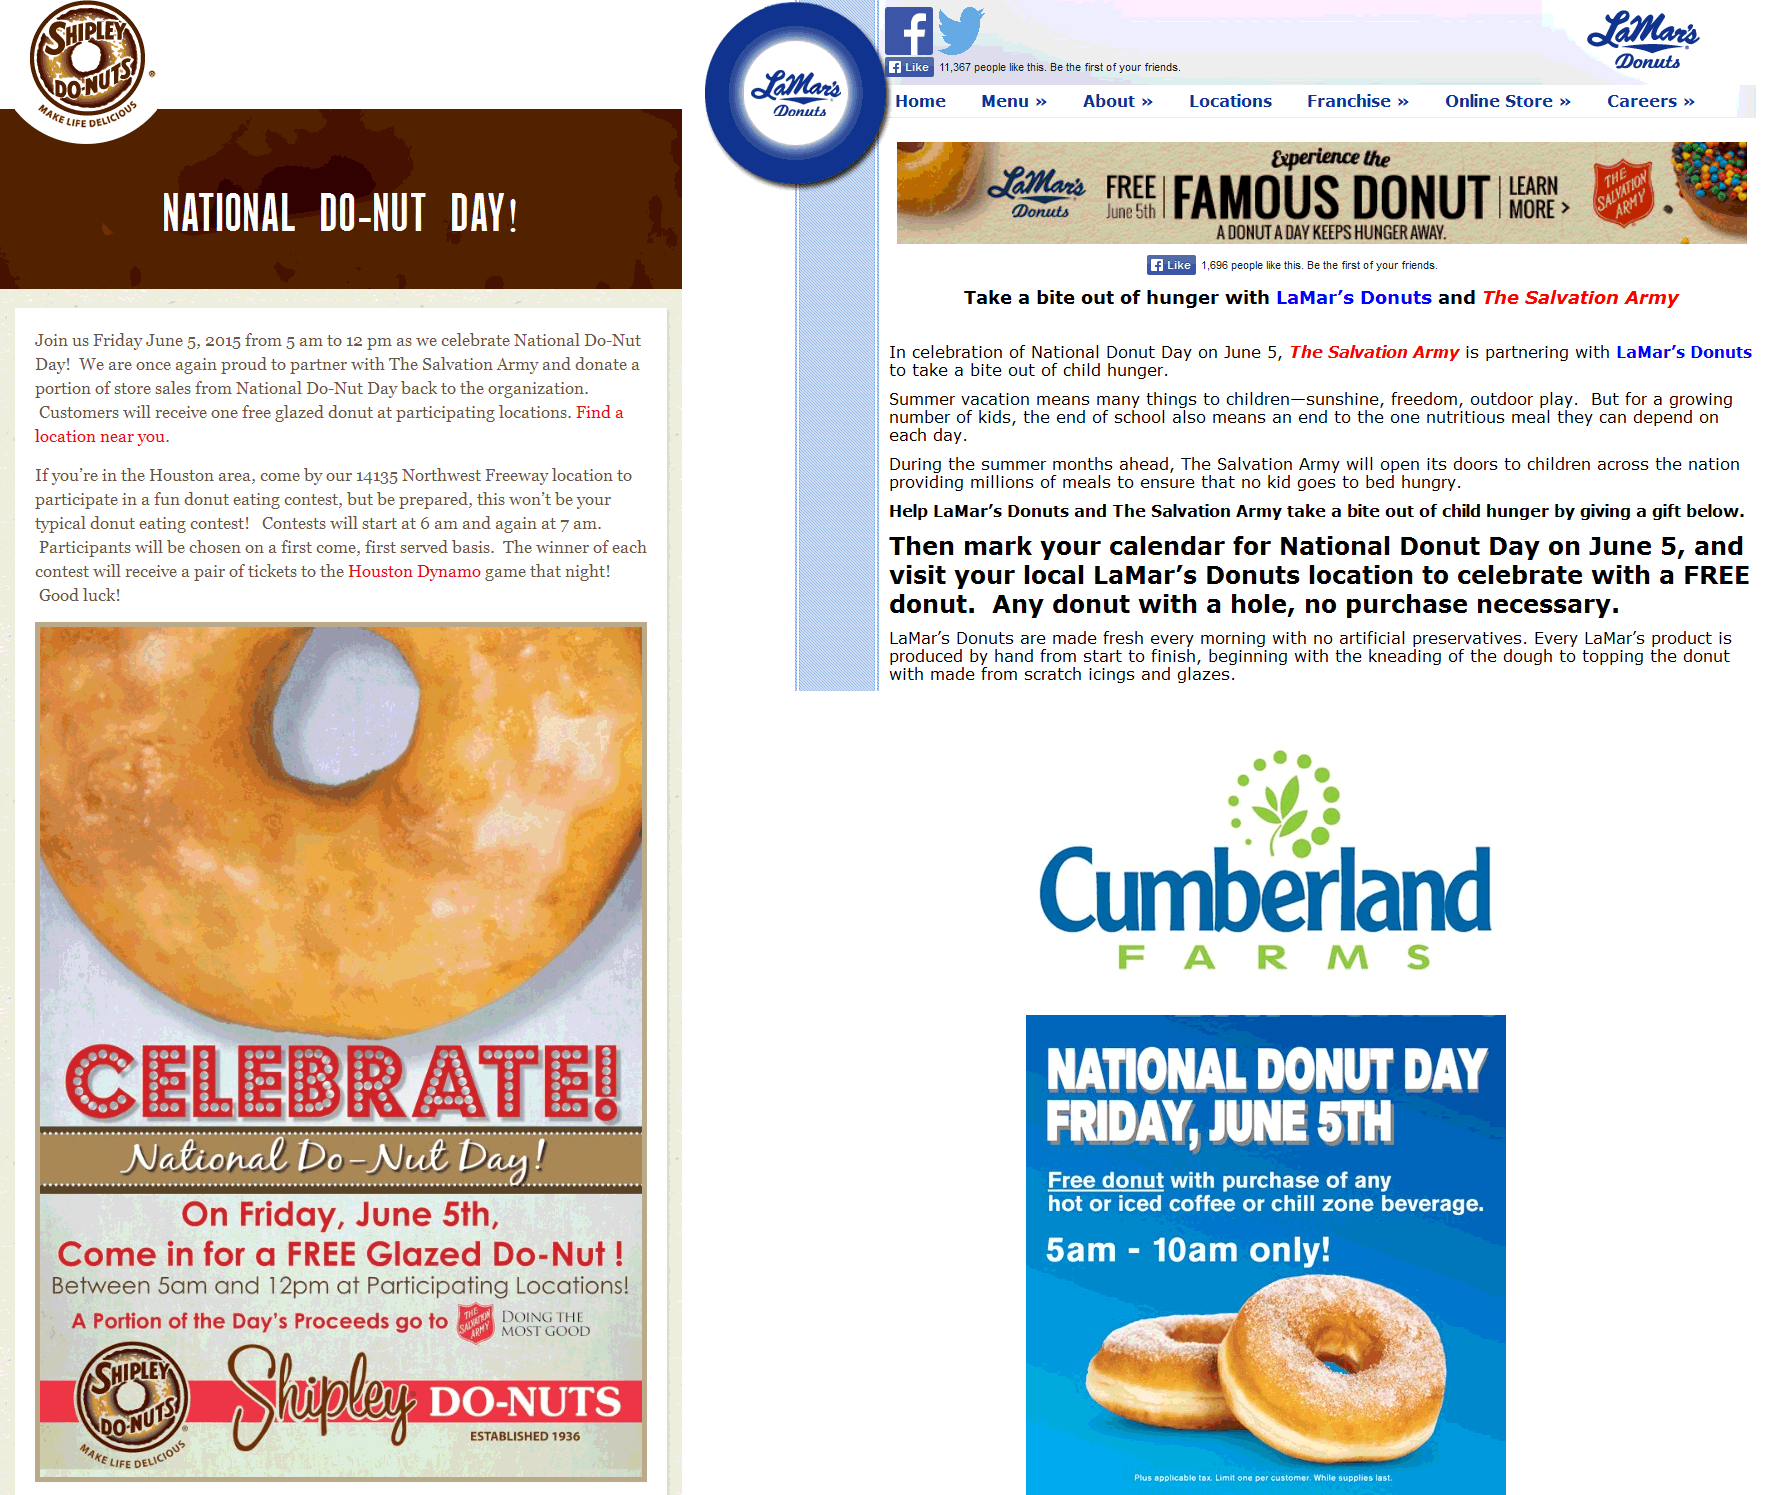 Shipley Do-Nuts Coupon June 2017 More free donuts today at Shipley Do-Nuts, LaMars Donuts & Cumberland Farms